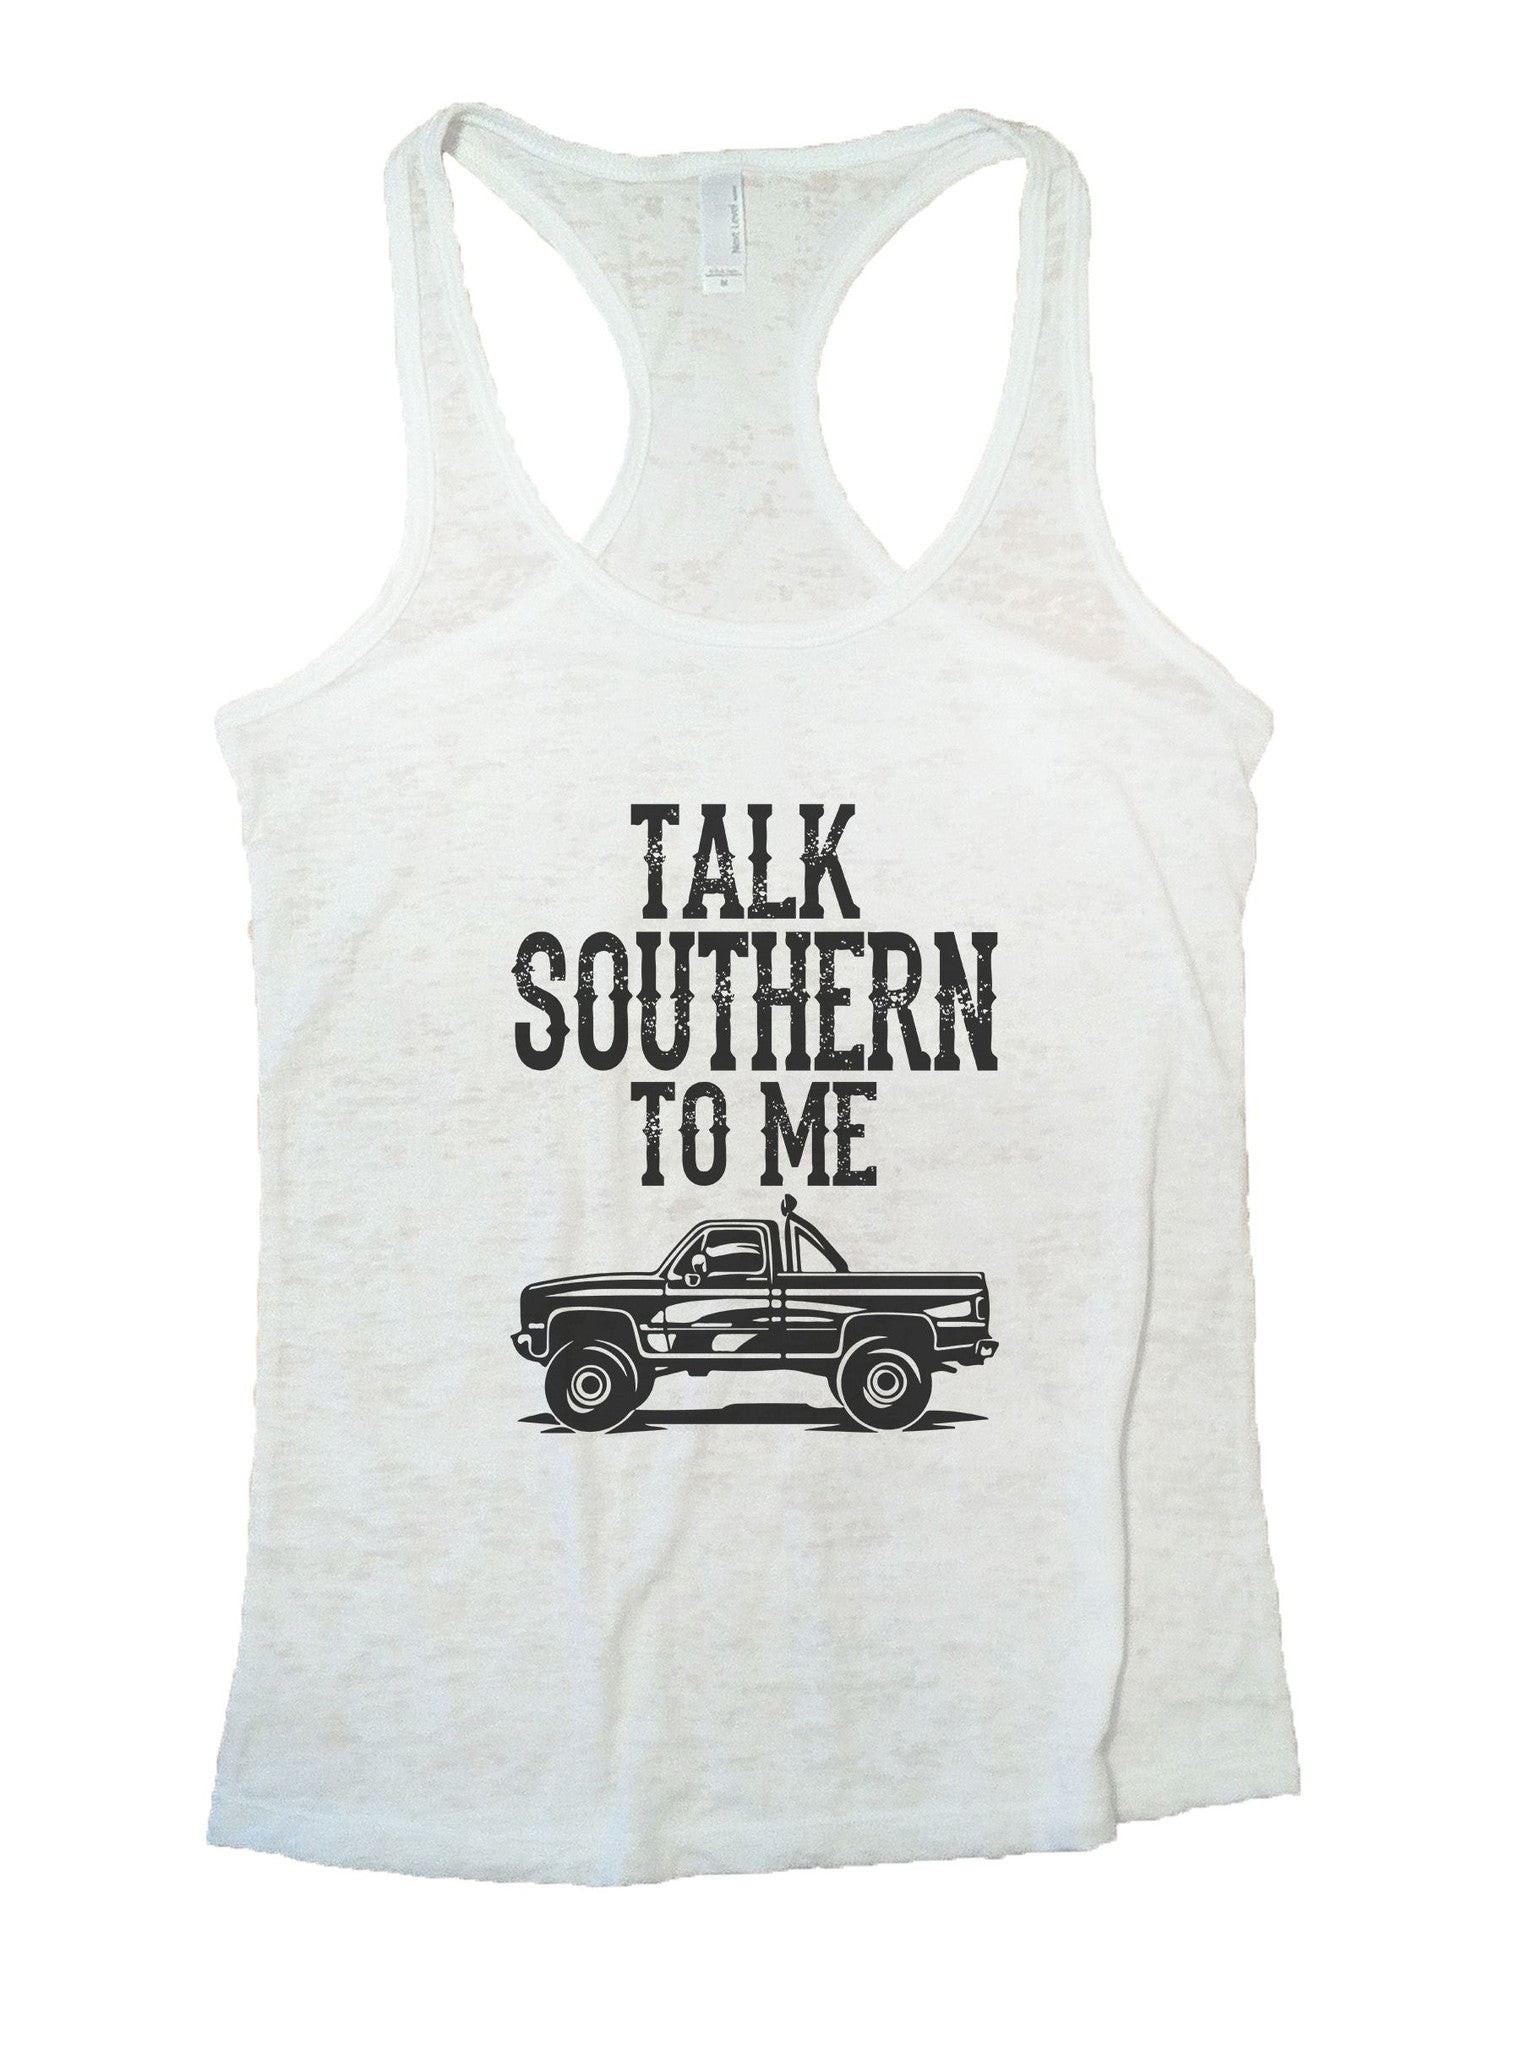 Talk Southern To Me Burnout Tank Top By BurnoutTankTops.com - 1010 - Funny Shirts Tank Tops Burnouts and Triblends  - 6